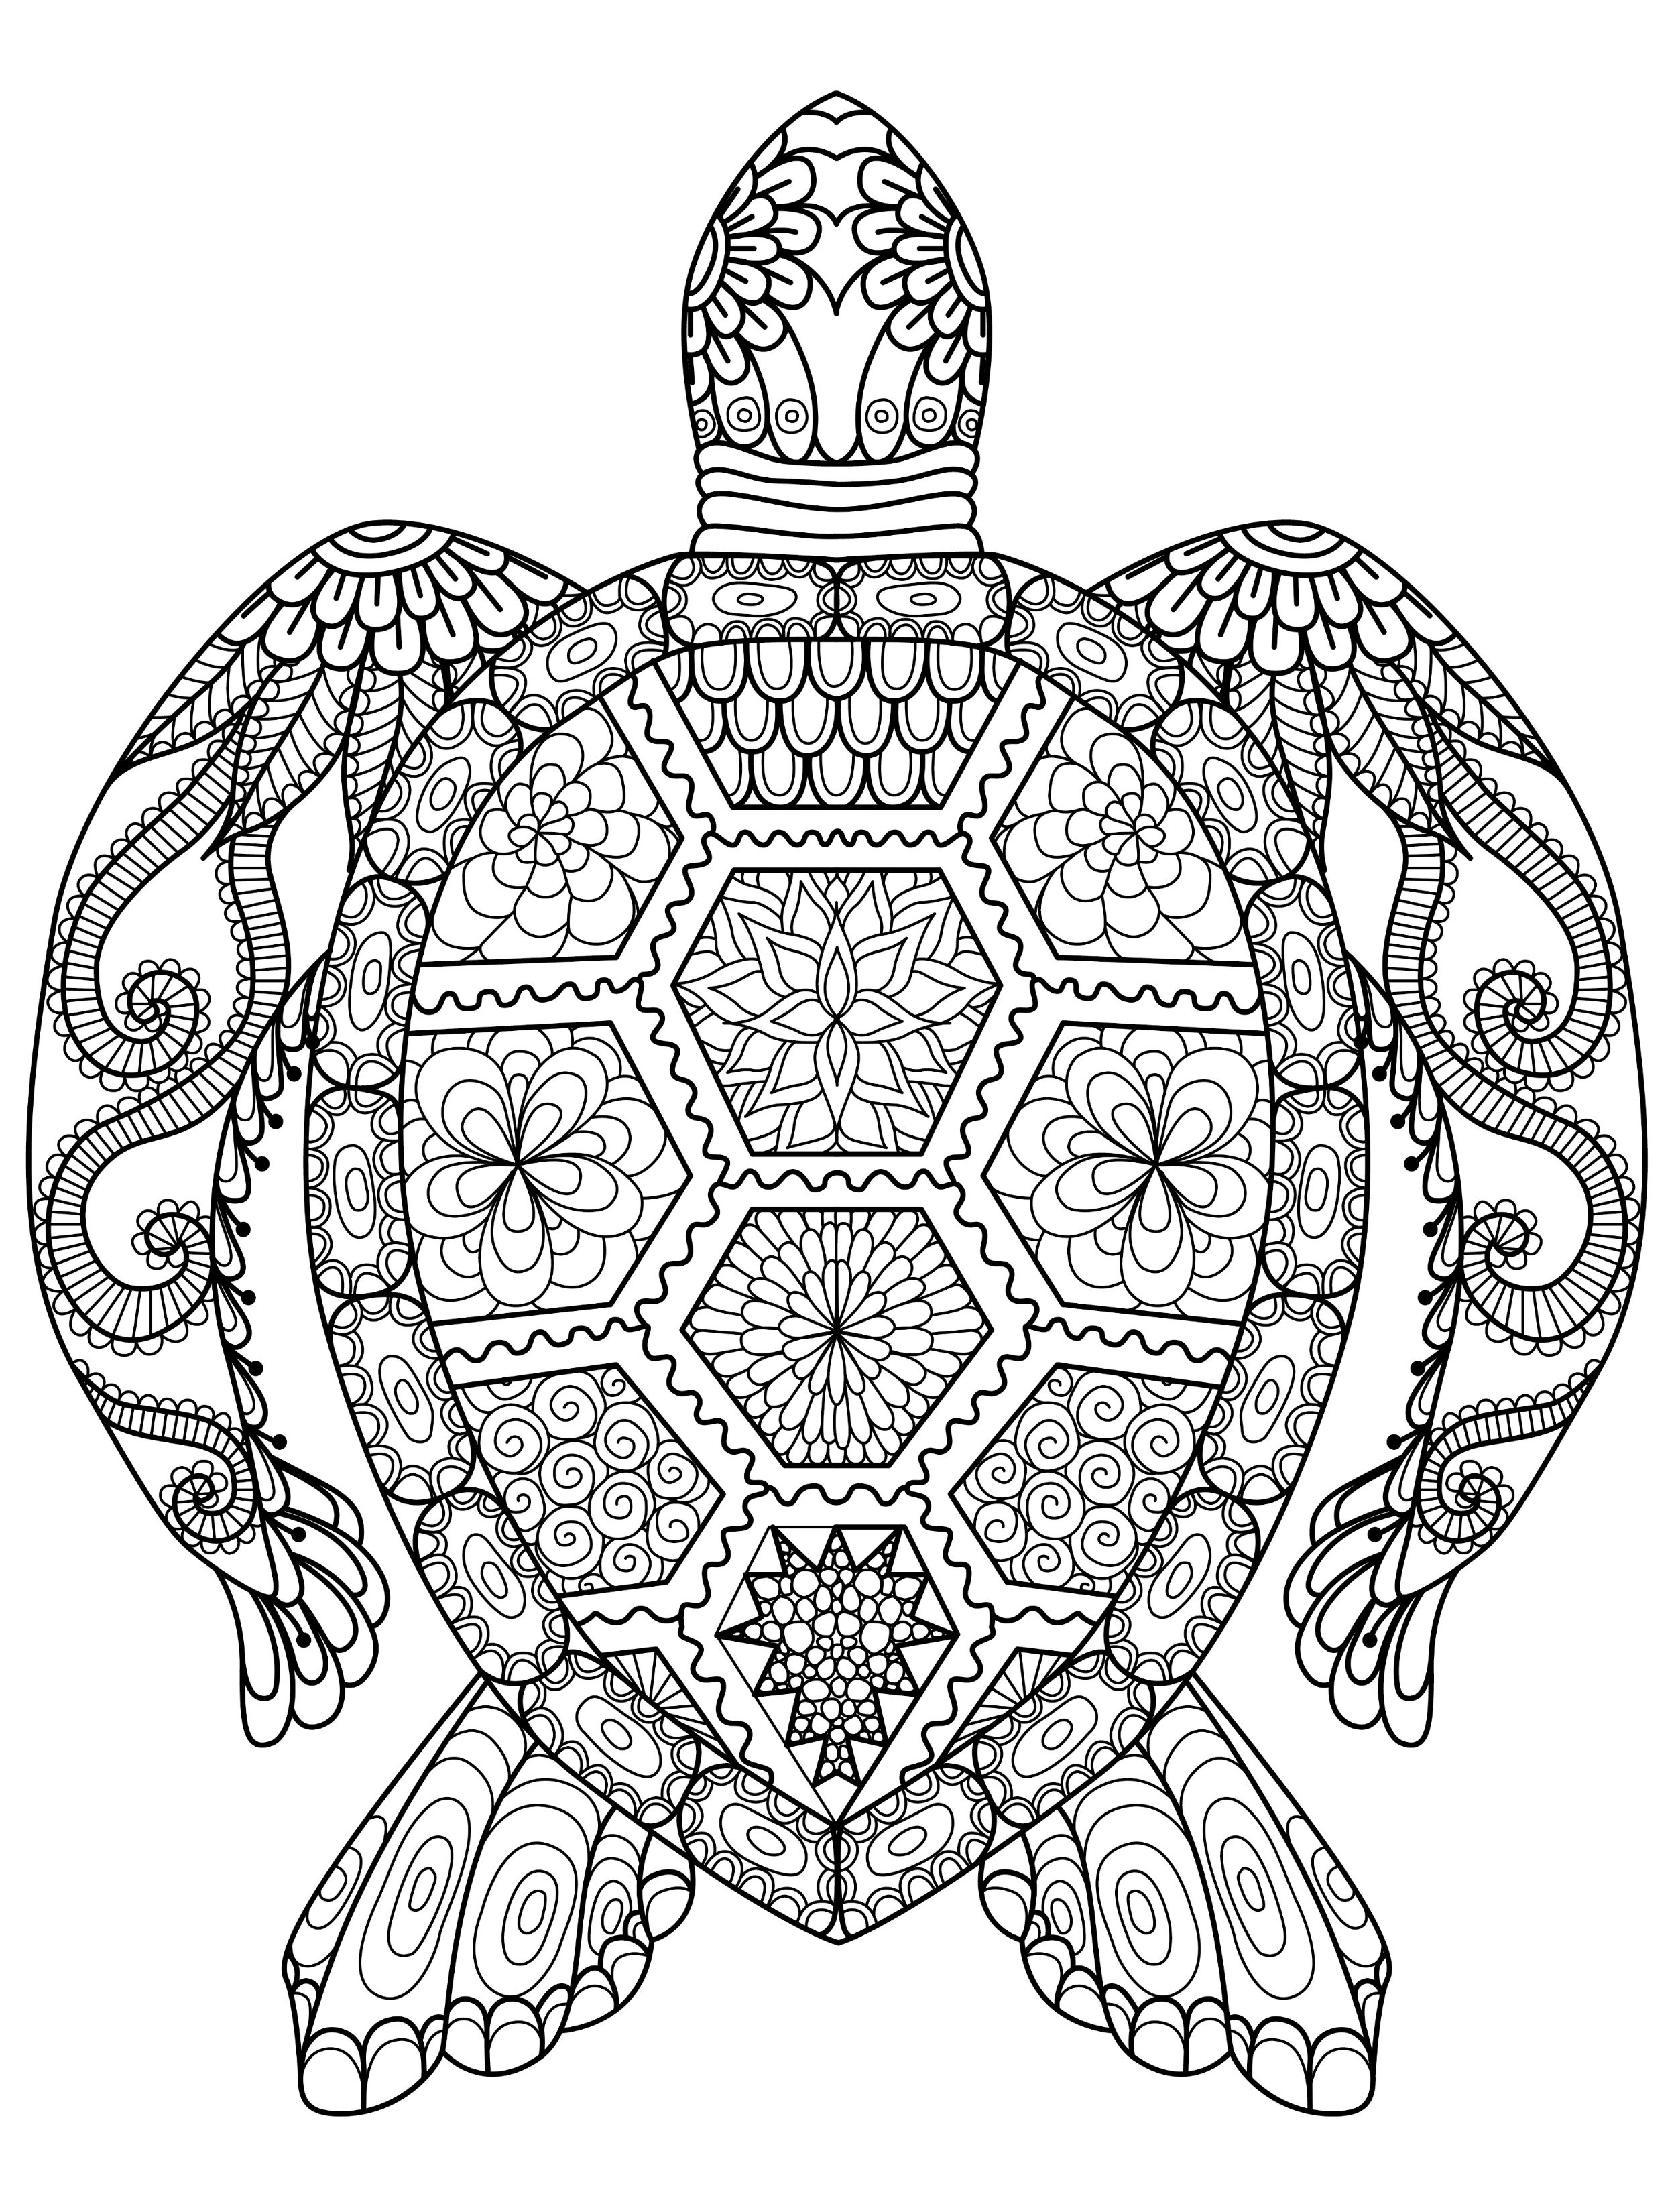 for coloring pictures free printable frozen coloring pages for kids best for pictures coloring